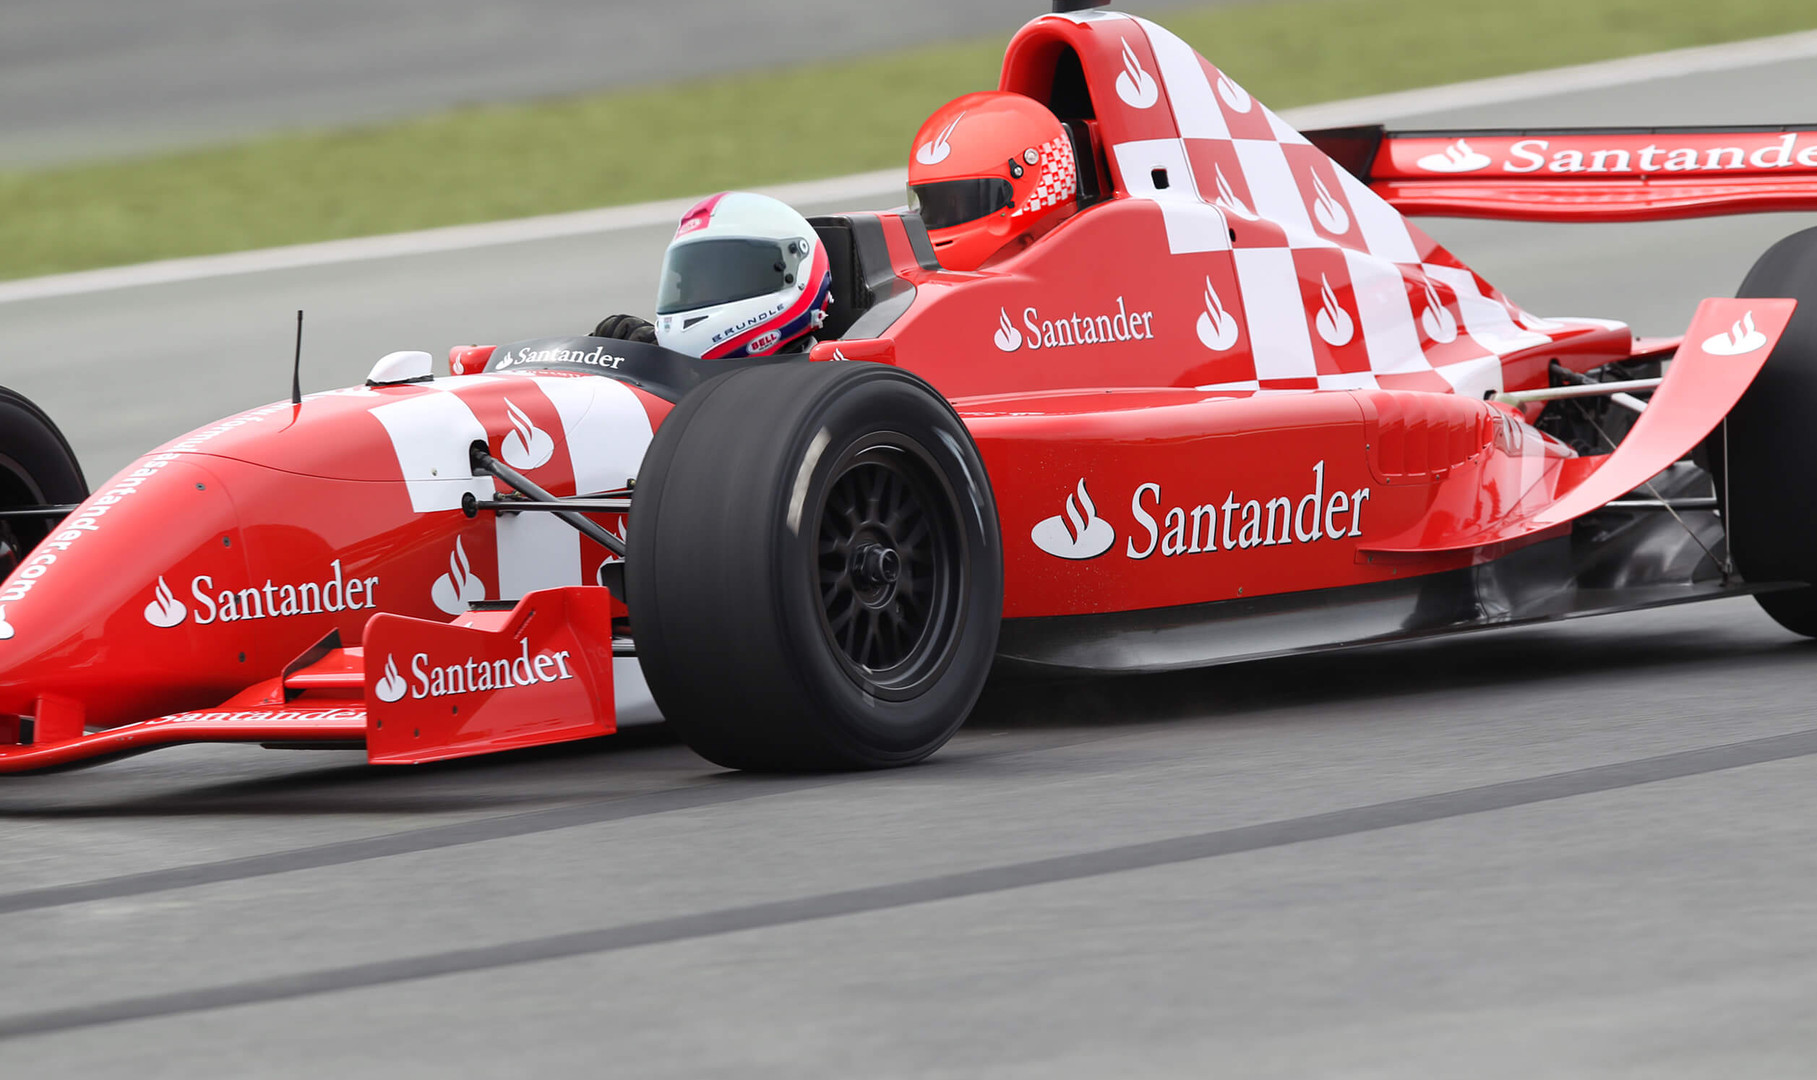 TWO-SEATER FORMULA1 CAR